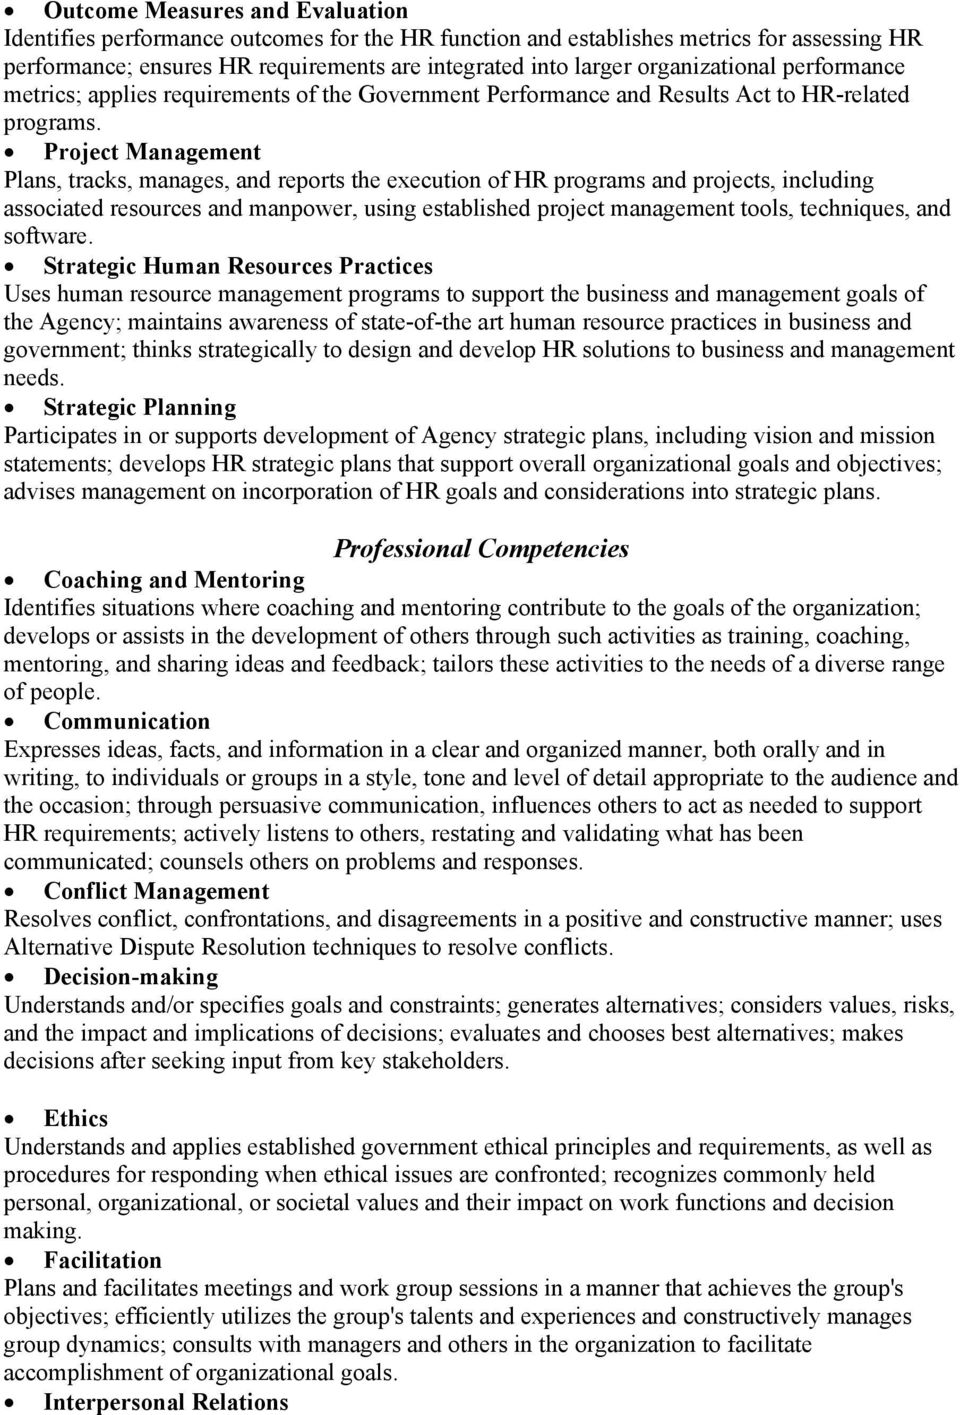 Project Management Plans, tracks, manages, and reports the execution of HR programs and projects, including associated resources and manpower, using established project management tools, techniques,